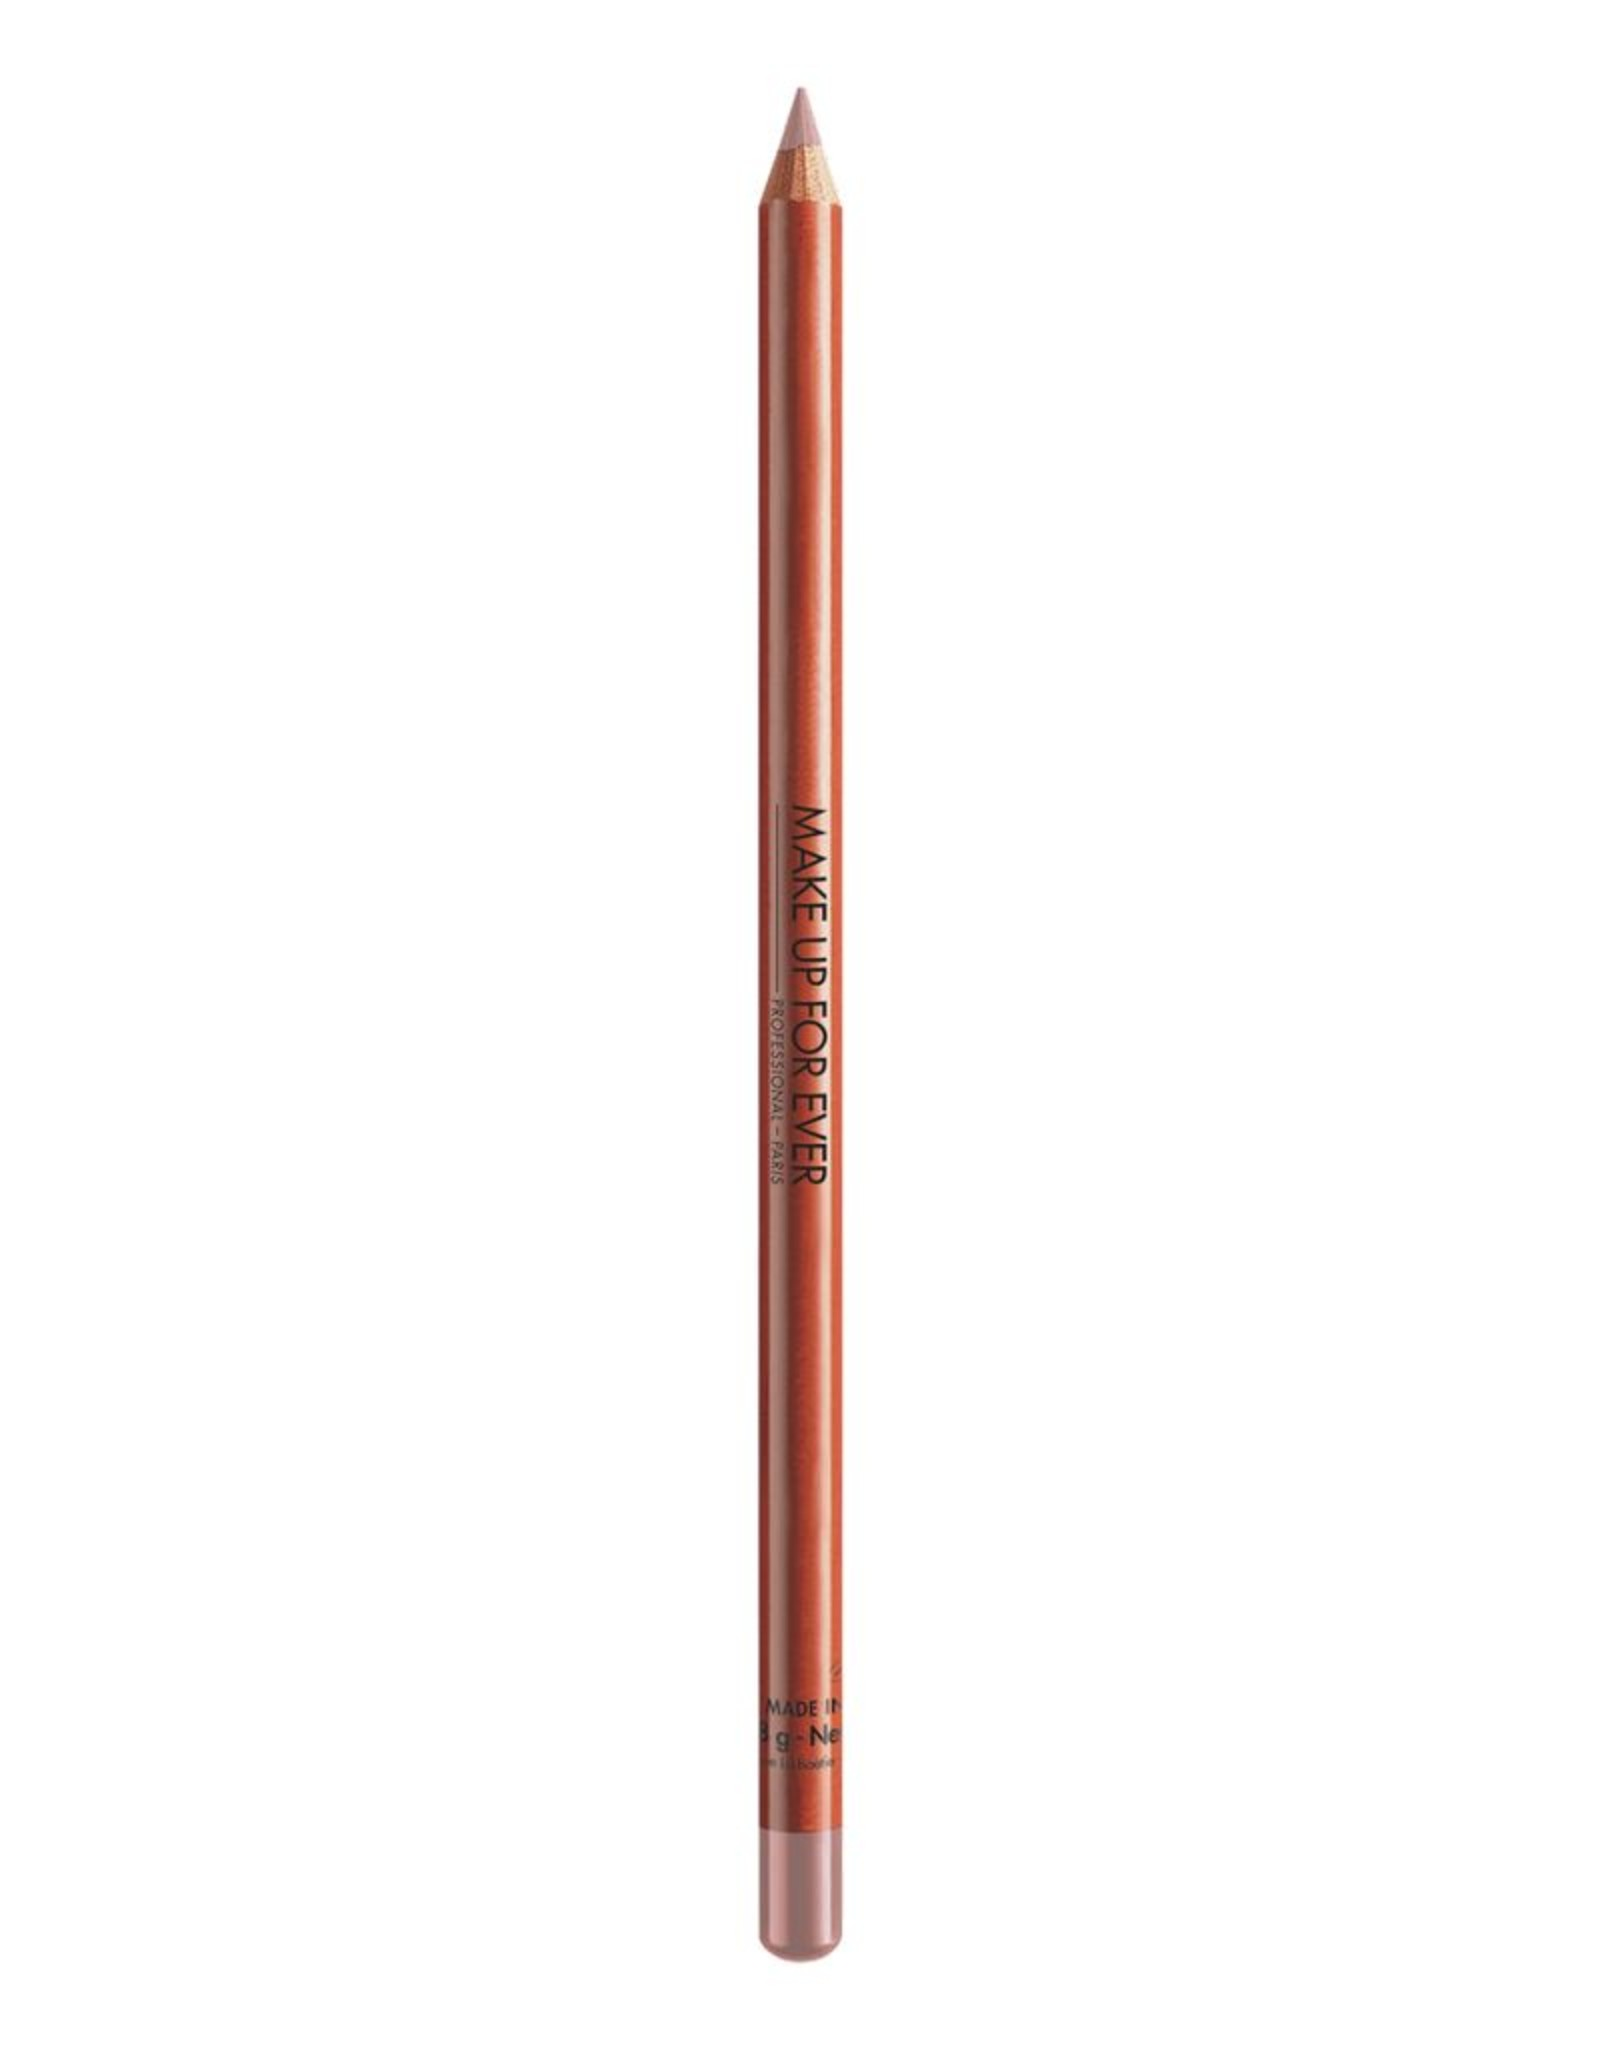 MUFE CRAYON LEVRES 1,8g N49  beige froid /  coldNude